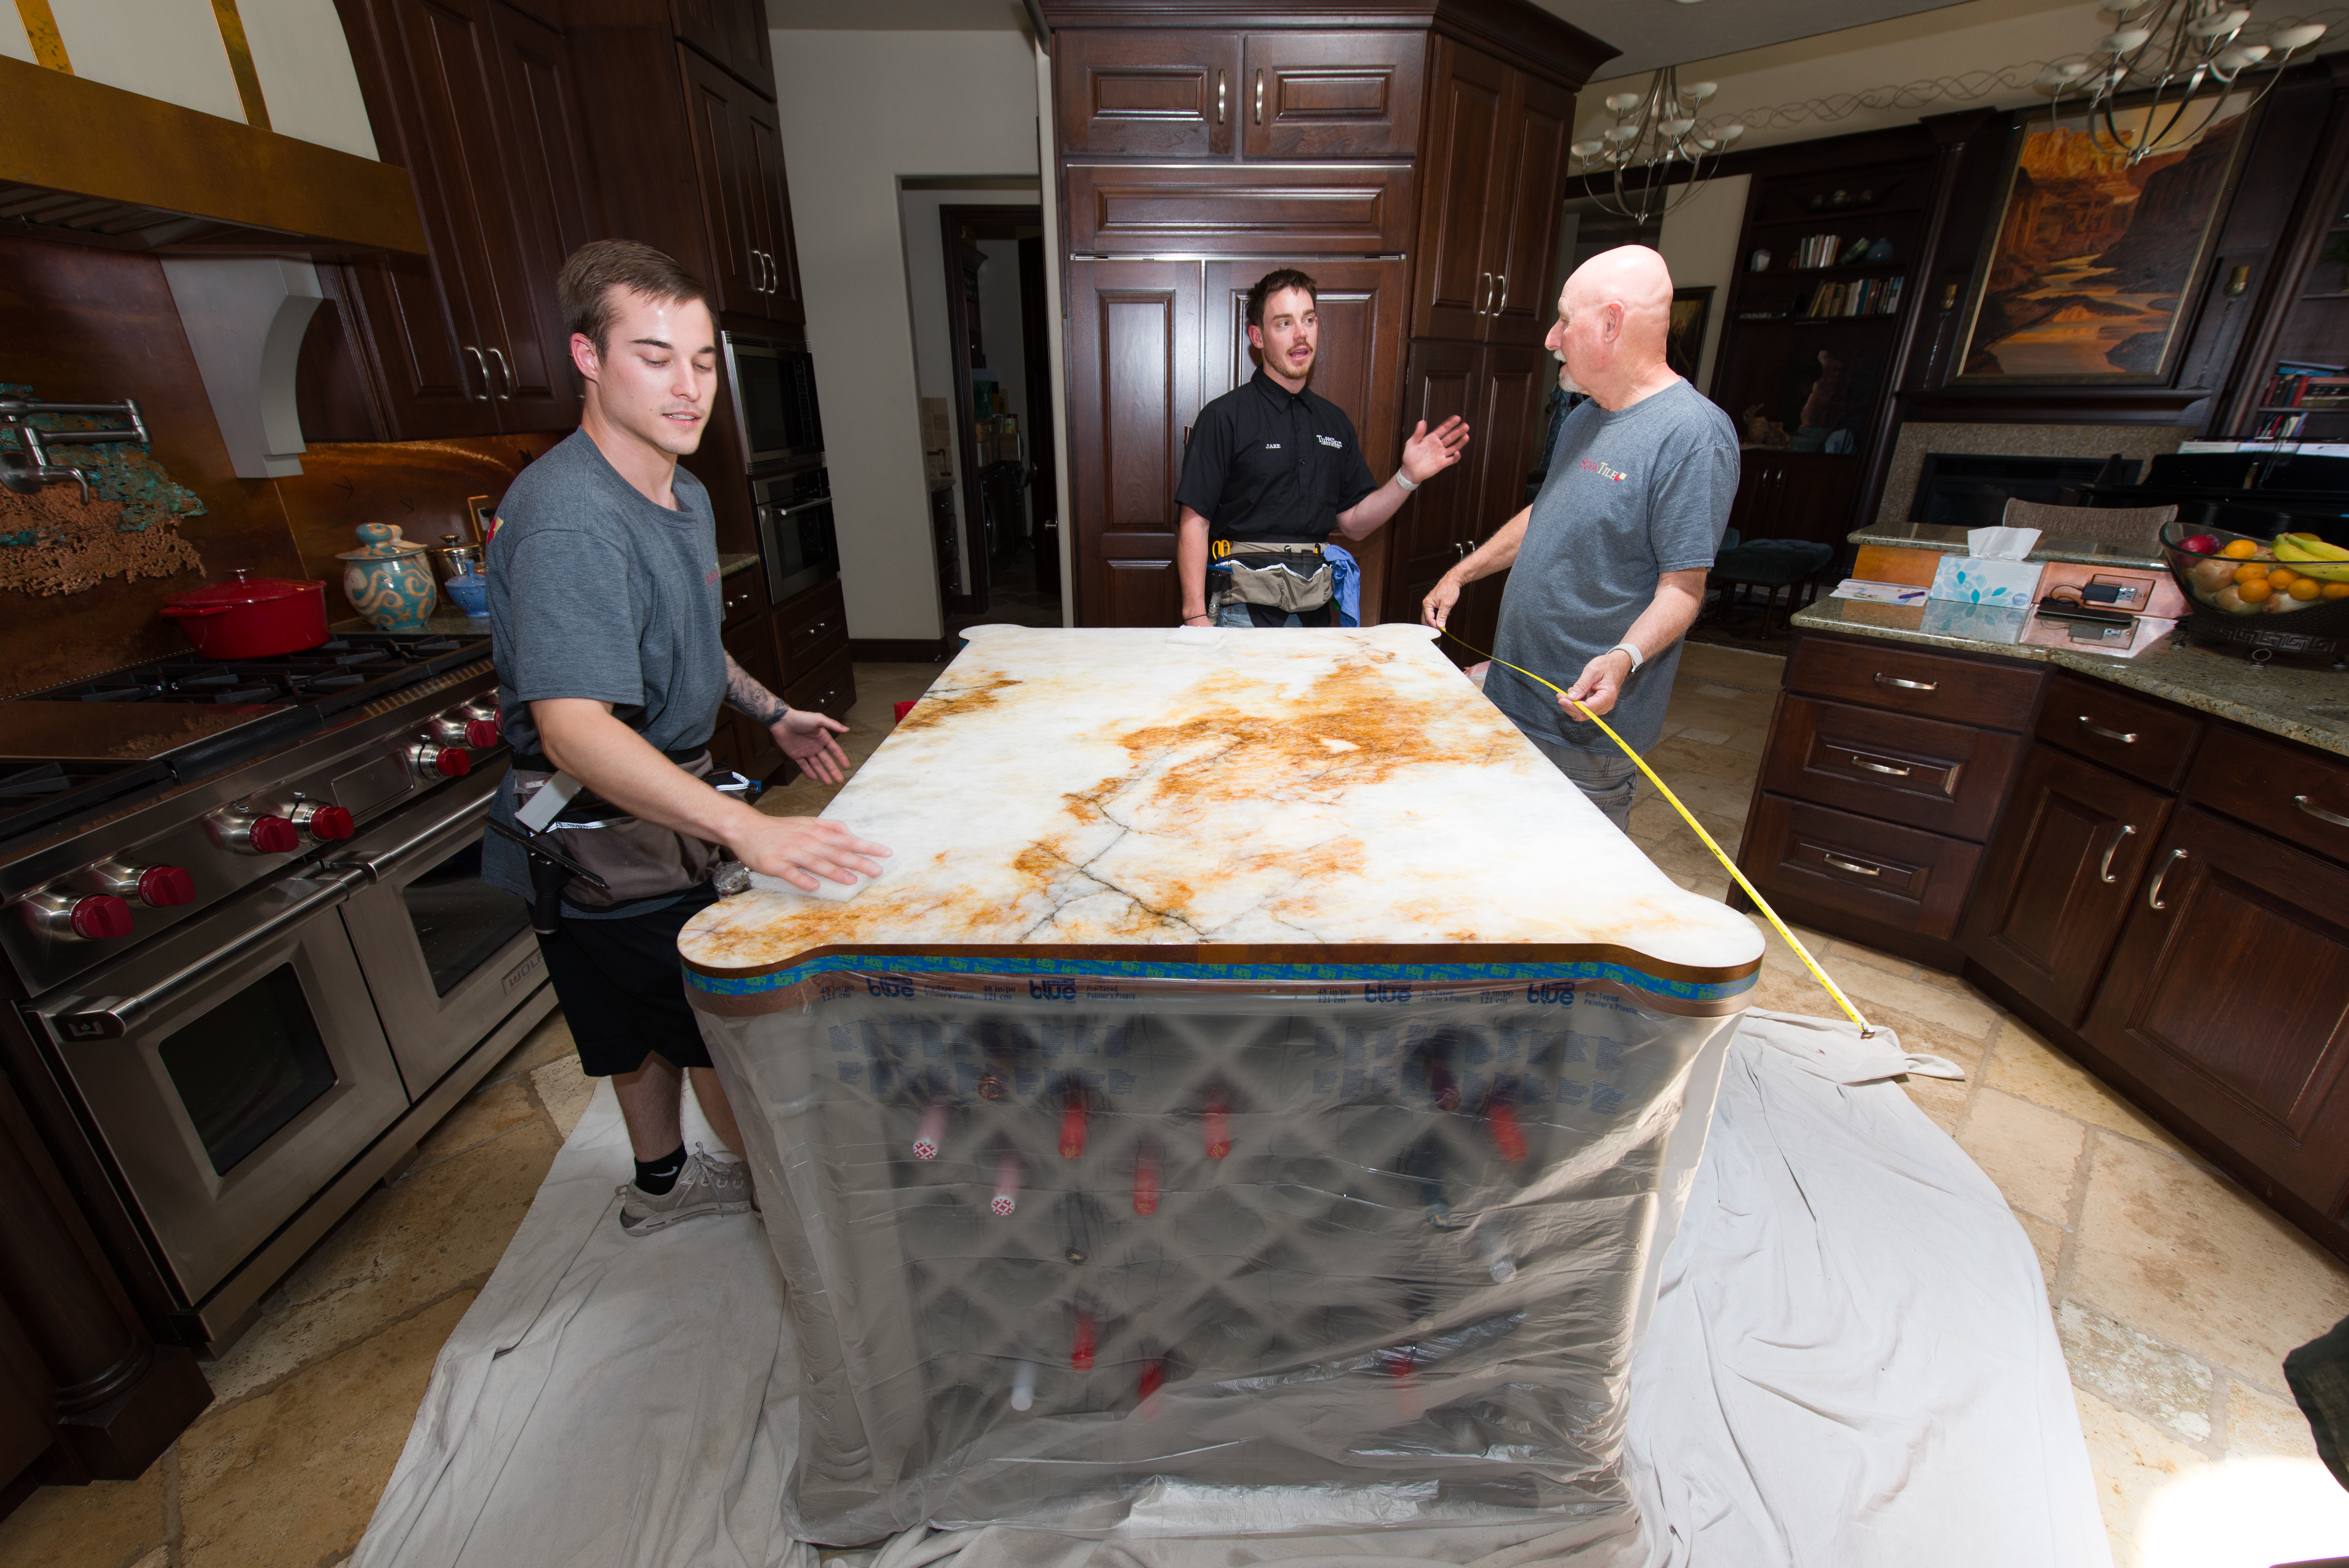 The area is draped and the cabinetry is covered with plastic for protection from water.